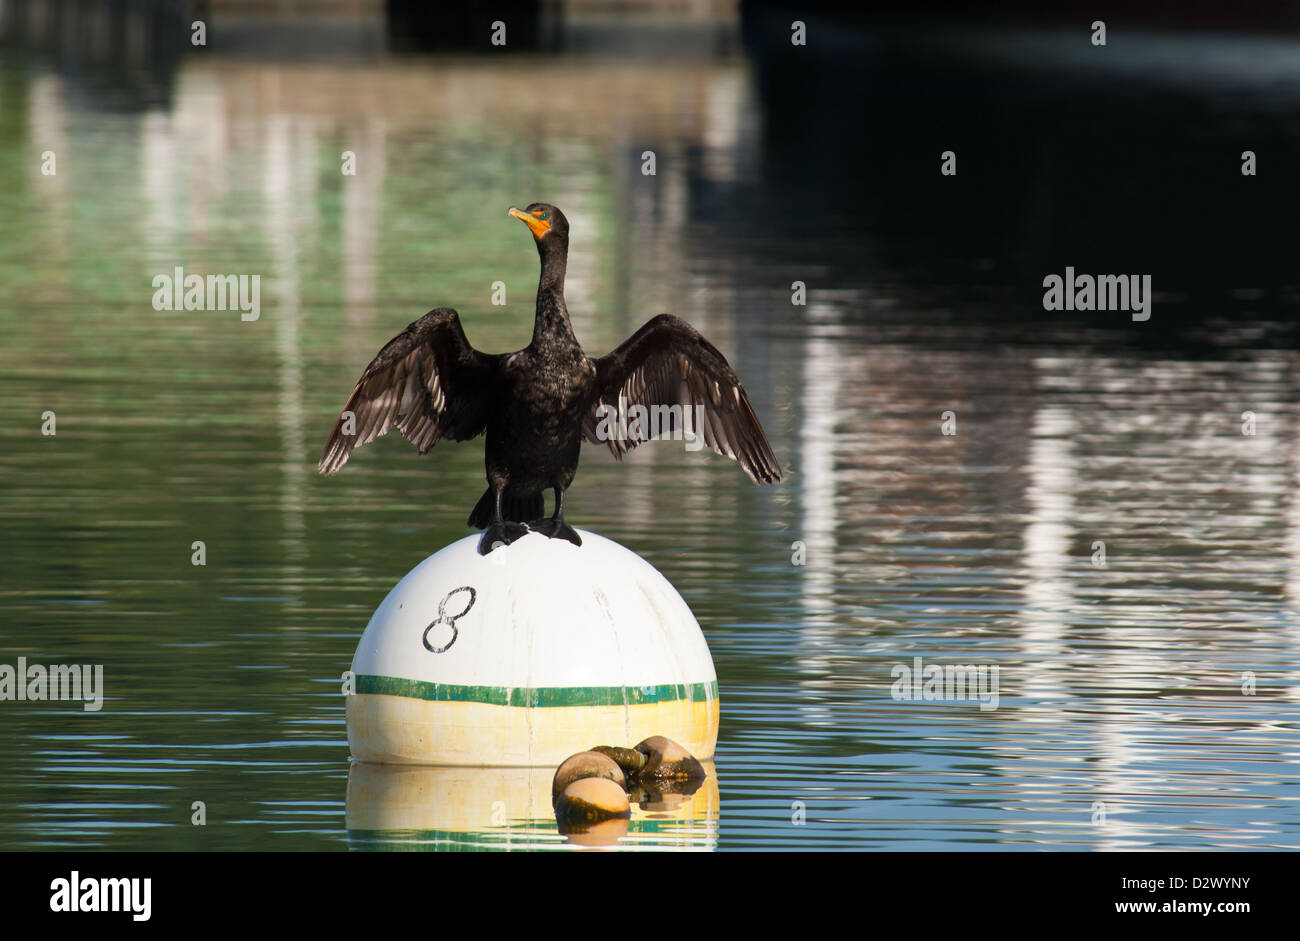 A double crested cormorant (Phalacrocorax auritus) perched on a lobster bouy near Freeport Maine - Stock Image